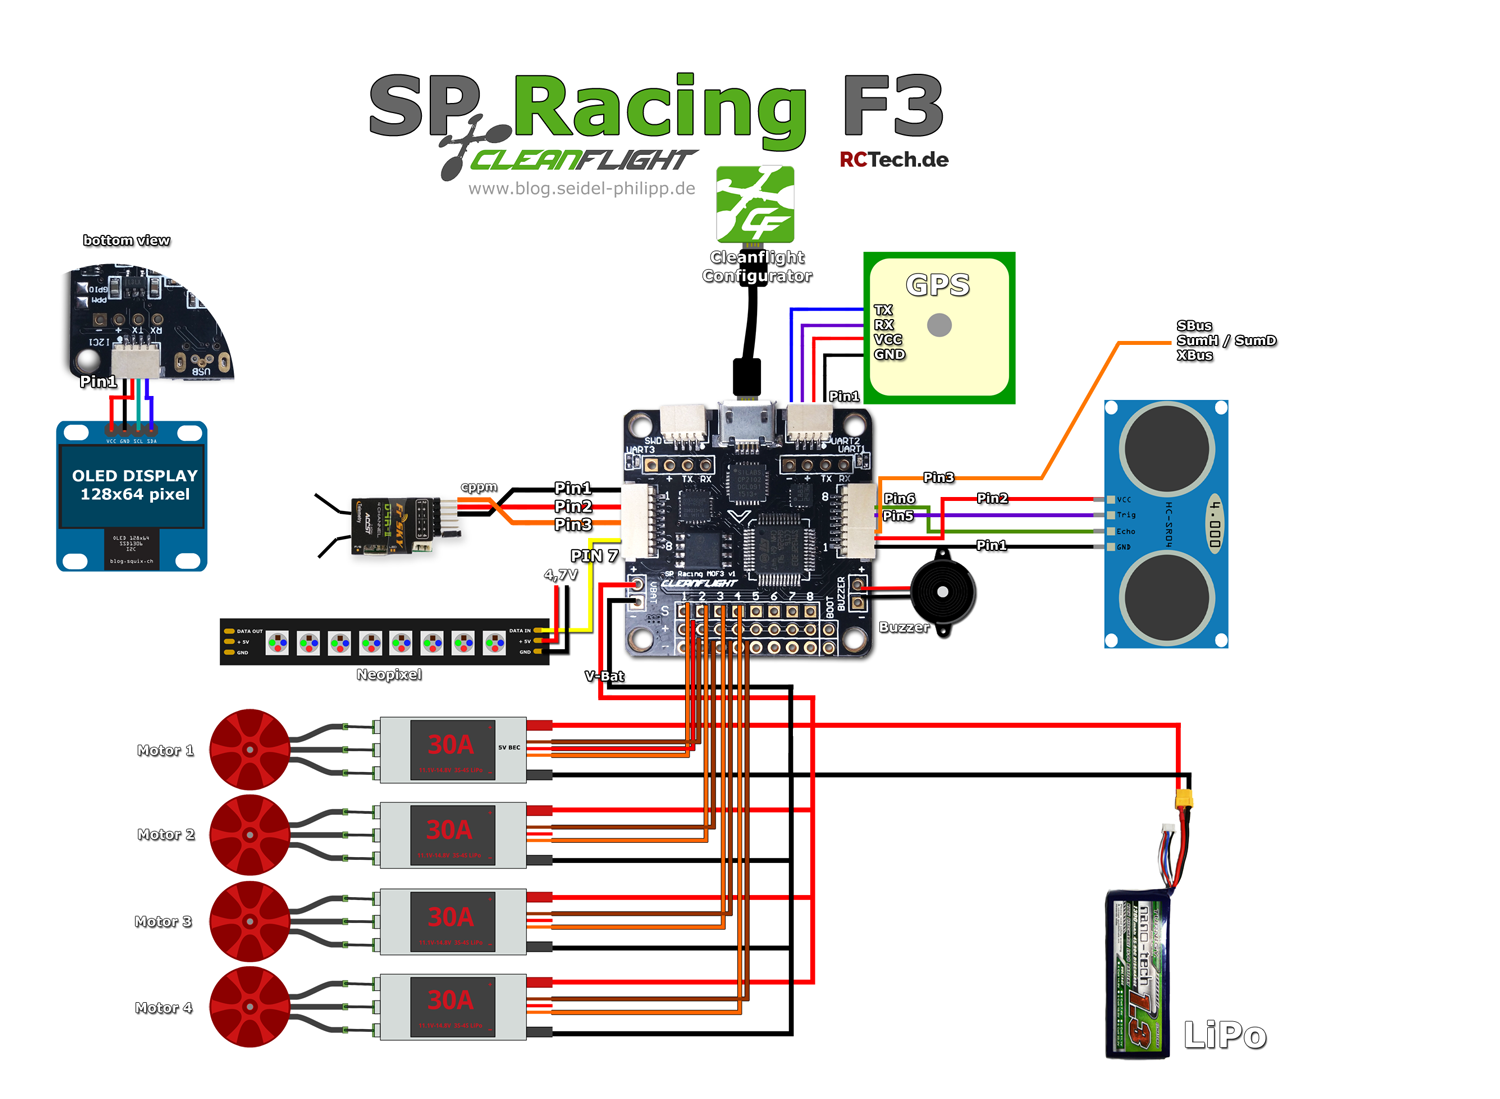 Panigale together with Schematic Diagram Wallpaper besides Sti Sparco Harness Bar besides De Openpilot Cc3d Flightcontroller Stm32 32 Bit Processor F c3 bcr Rc Models P237818 together with Cc3d Wiring Diagrams. on evo wiring diagram